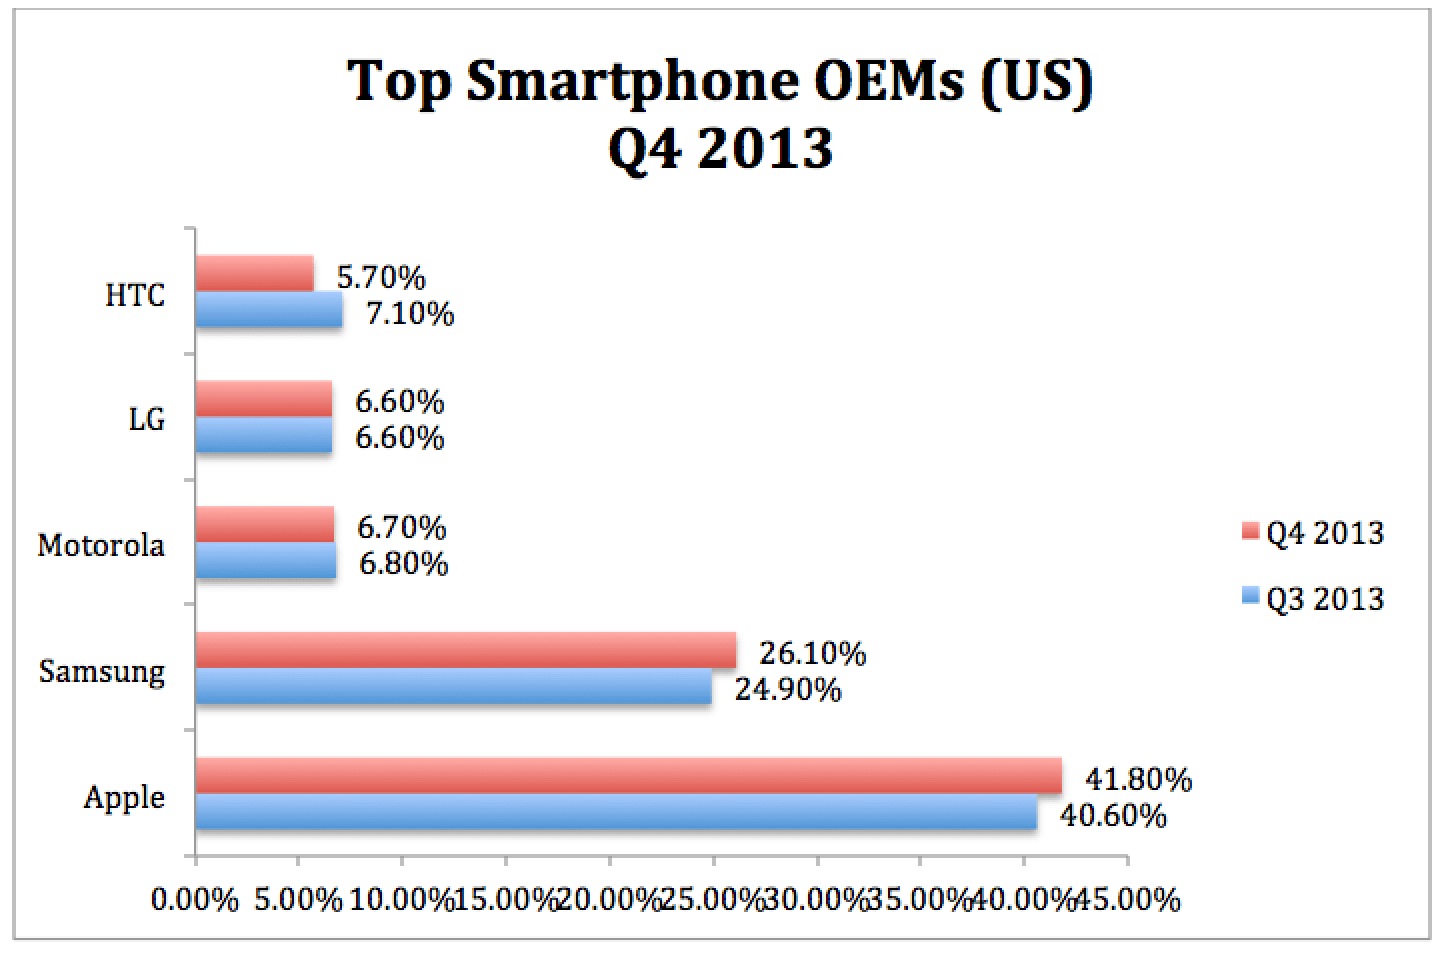 Android leads with 51.8% US Smartphone market share. Motorola jumps to 3rd place